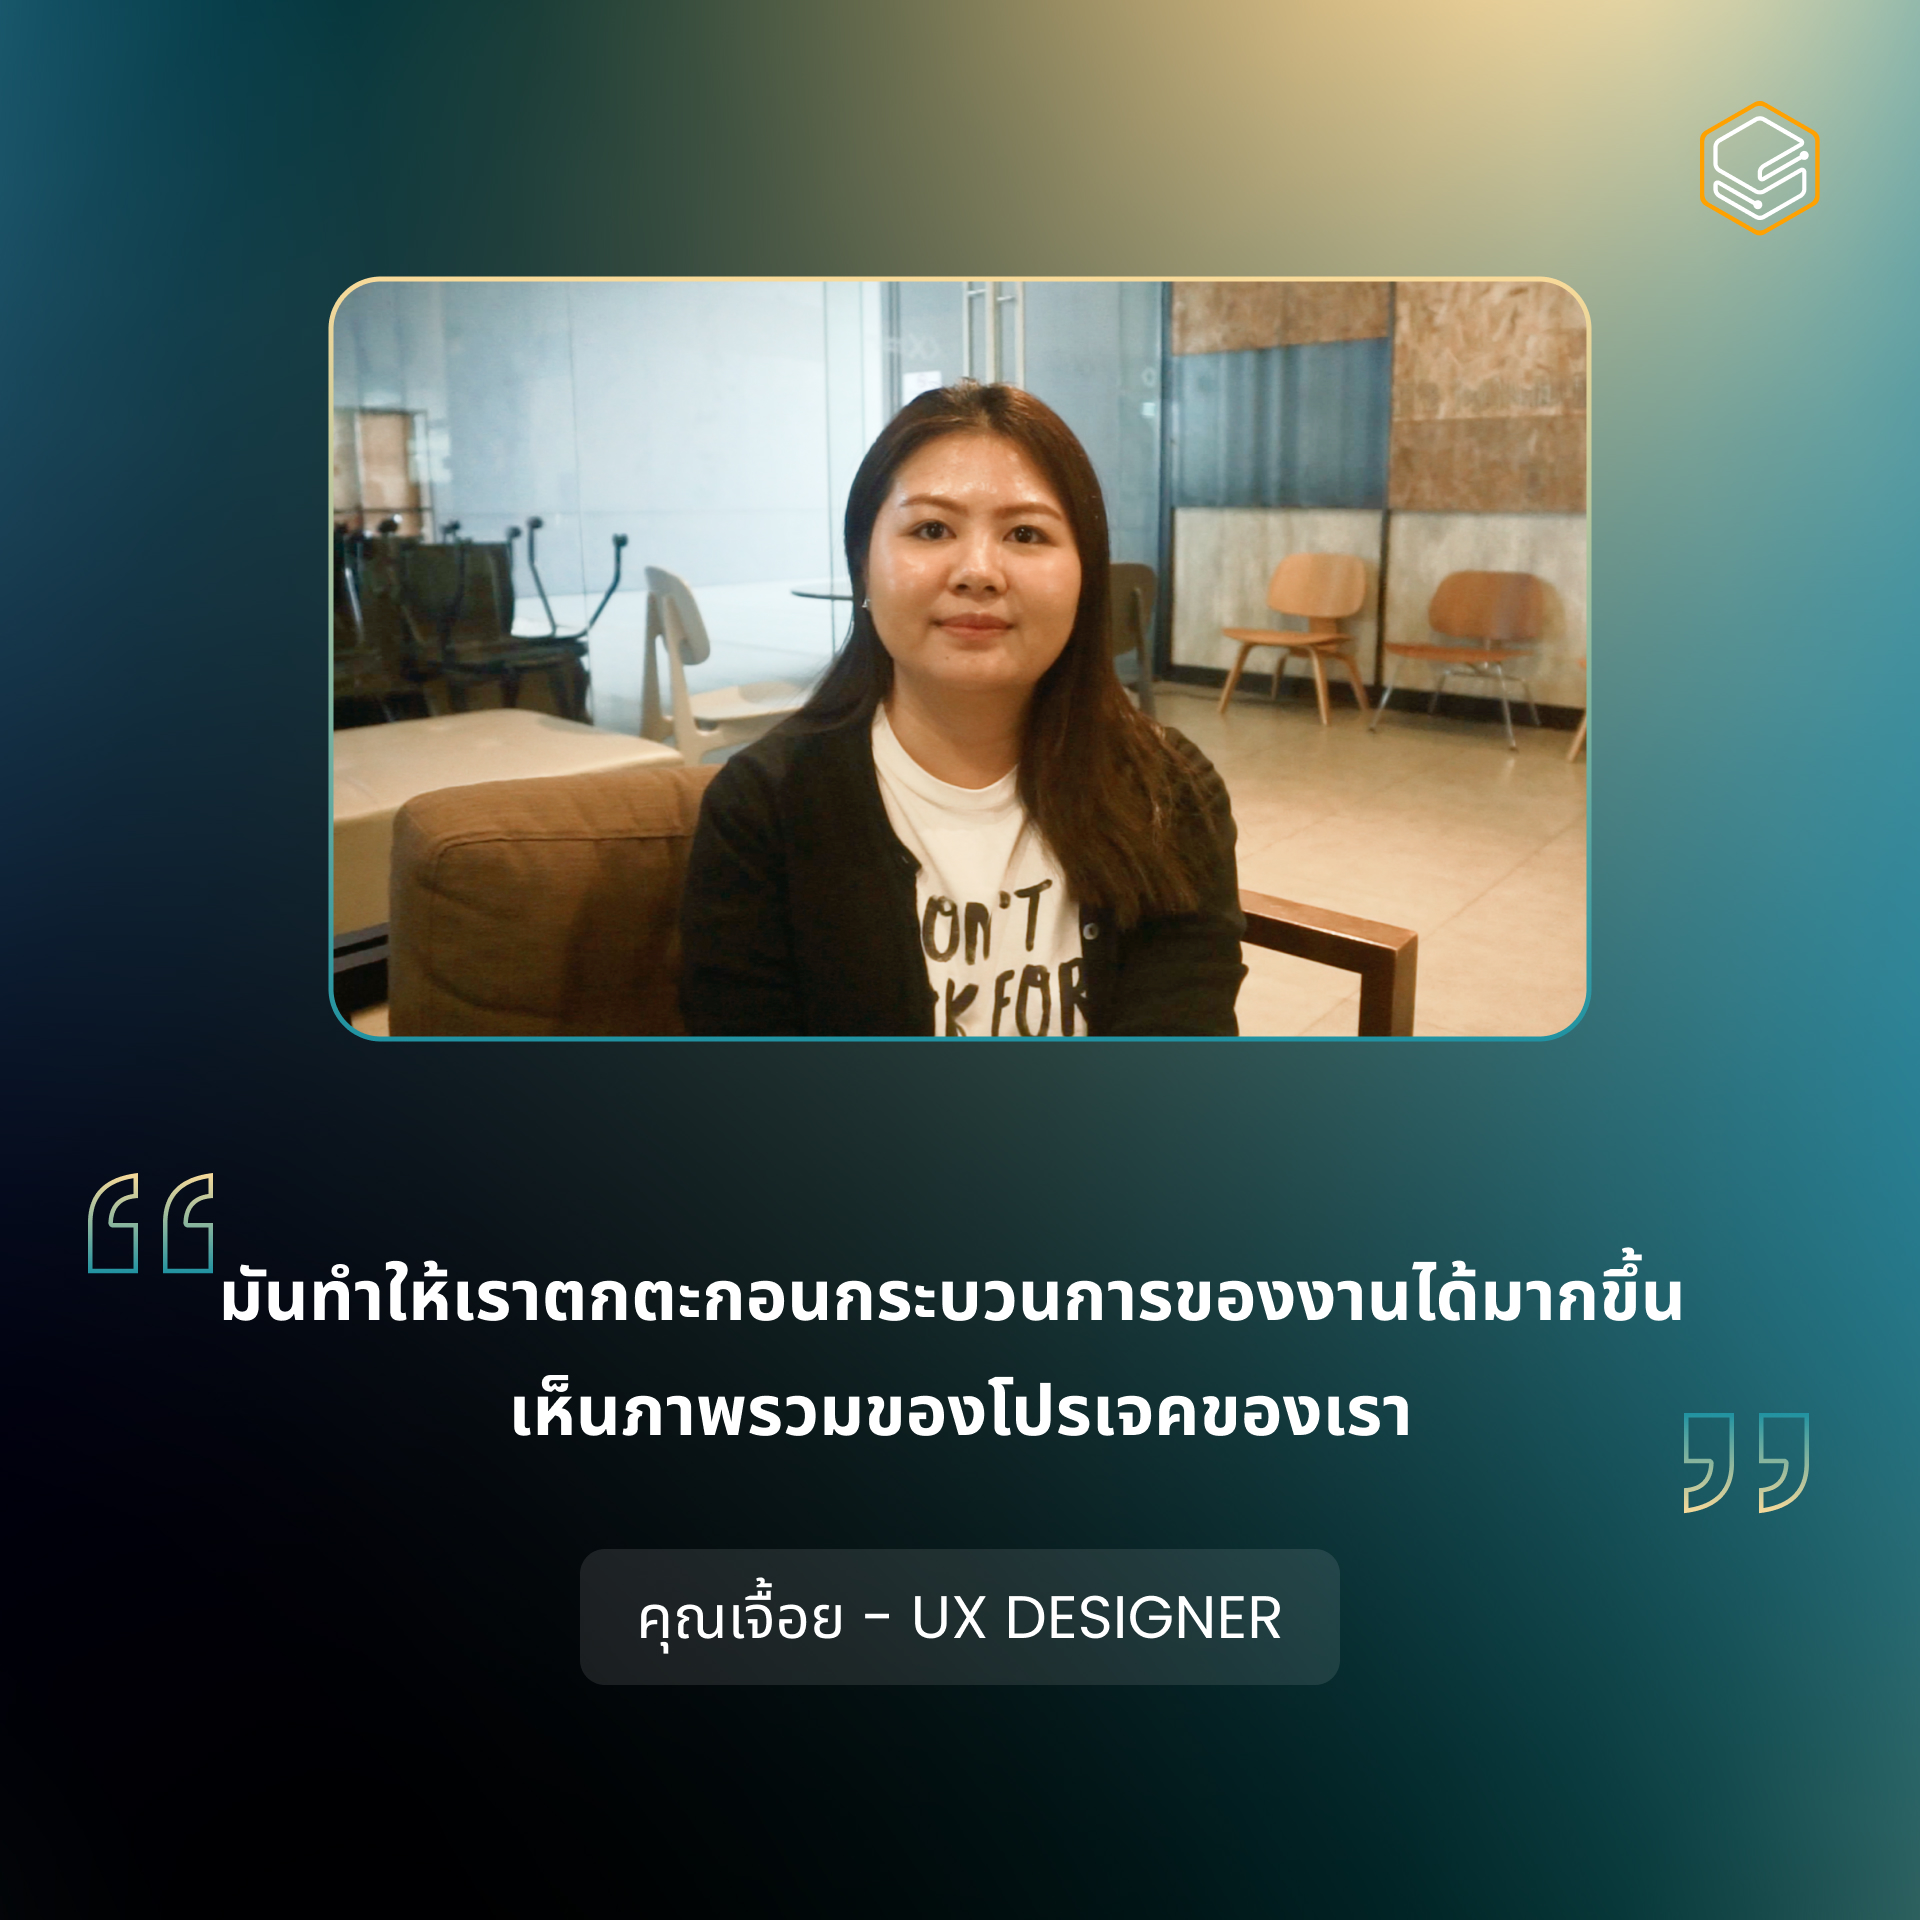 คุณเจื้อย - UX Designer  | Skooldio Workshop Testimonial: Service Design Thinking